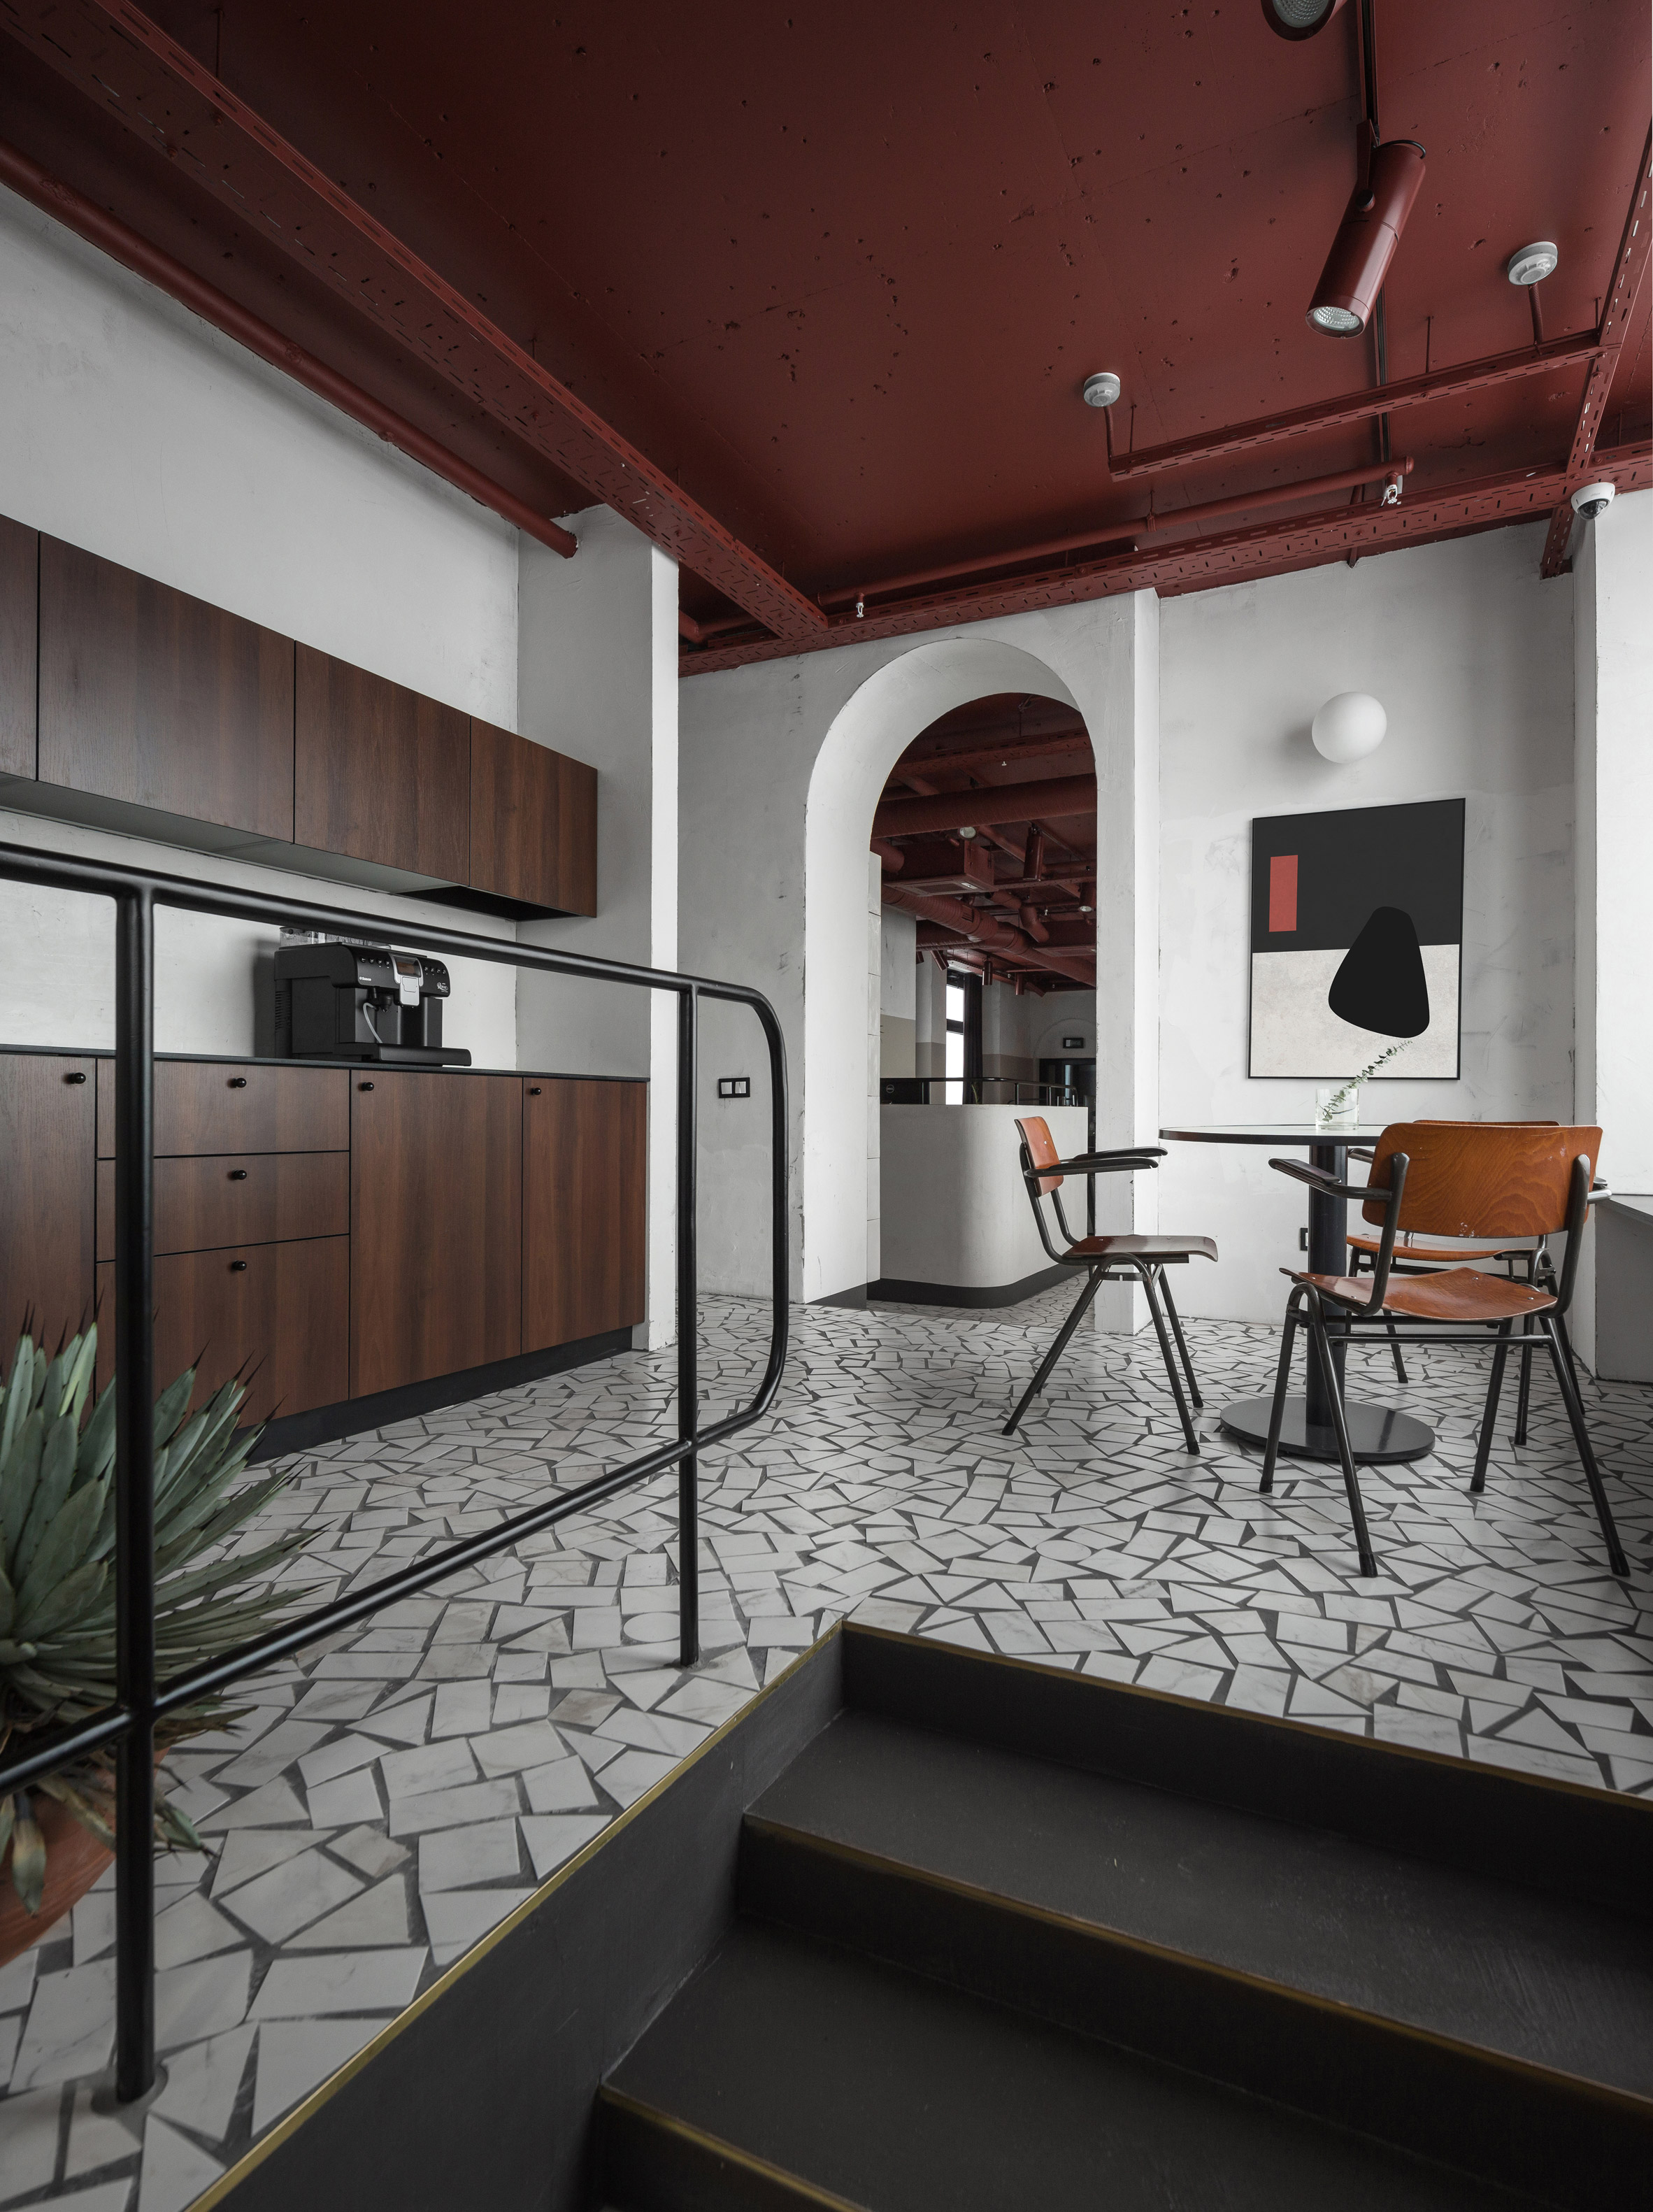 Studio11 Recreates Soviet Architecture in Gaming Company Office Design office design Studio11 Recreates Soviet Architecture in Gaming Company Office Design Studio11 Recreates Soviet Architecture For Gaming Company Office 6